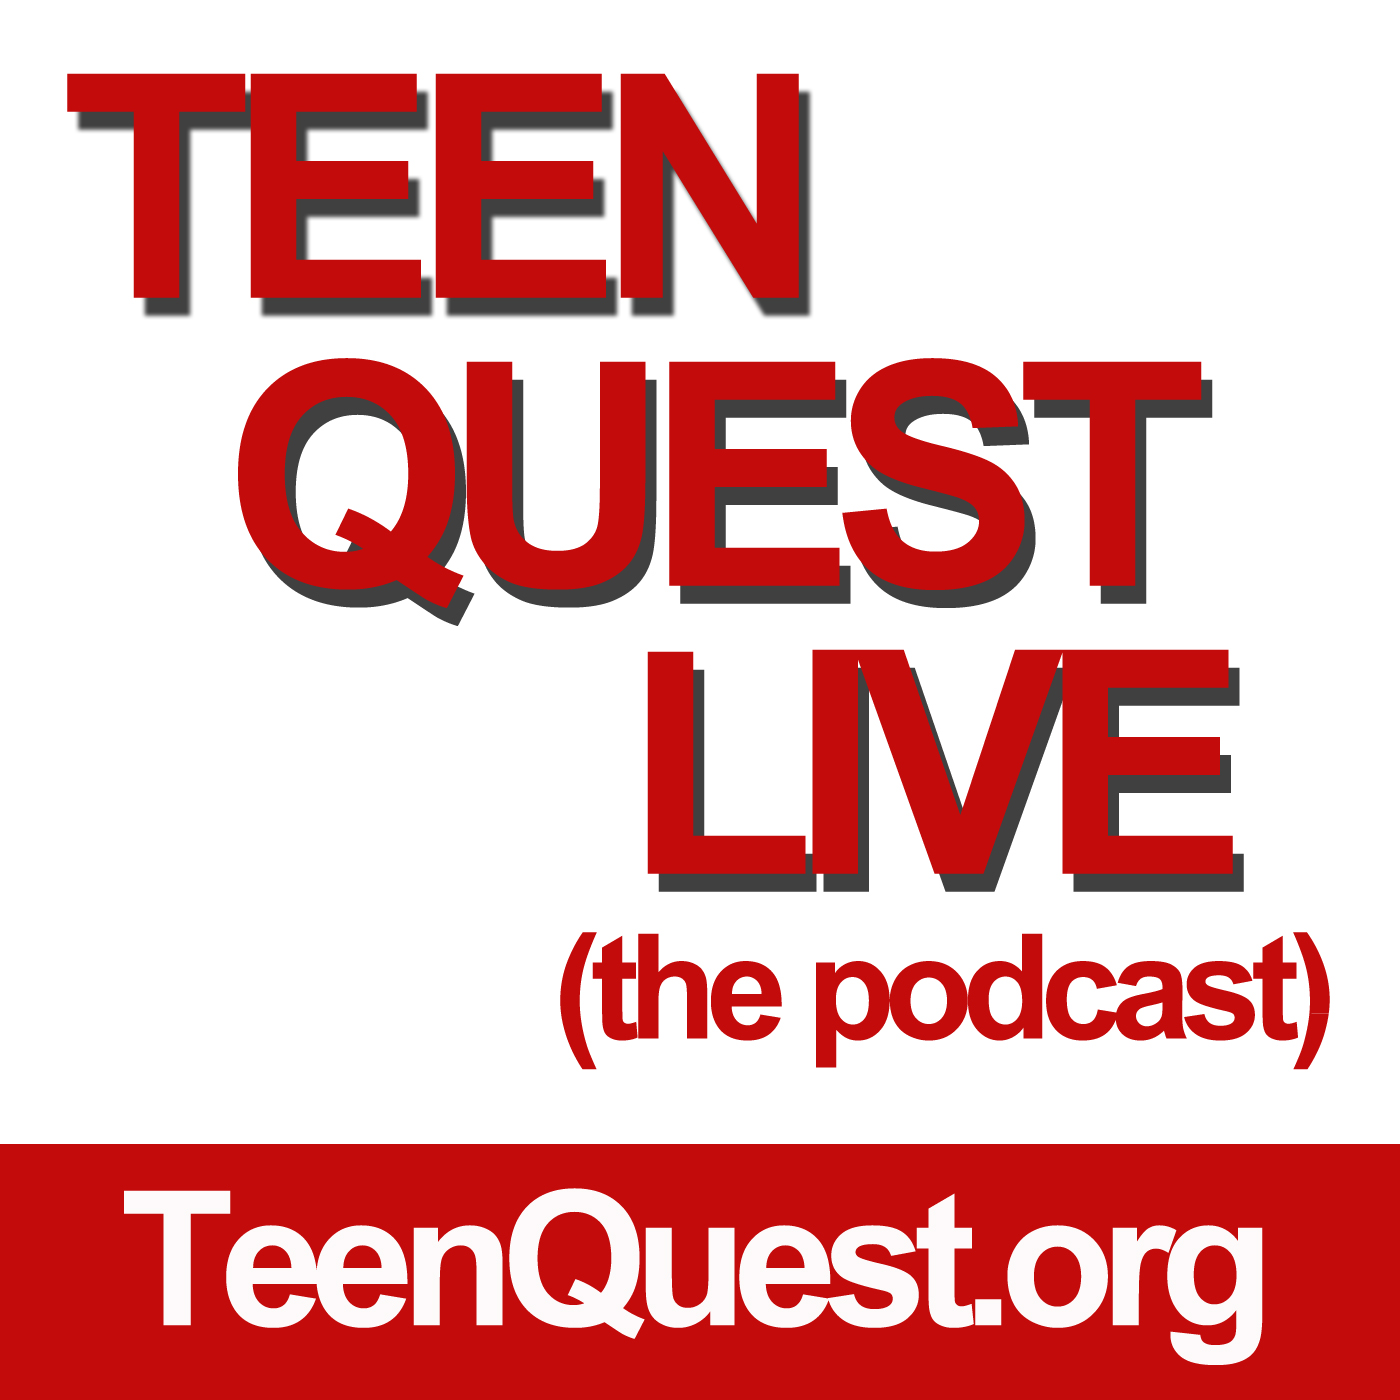 Teen Quest Live | Youth Ministry Podcast show art